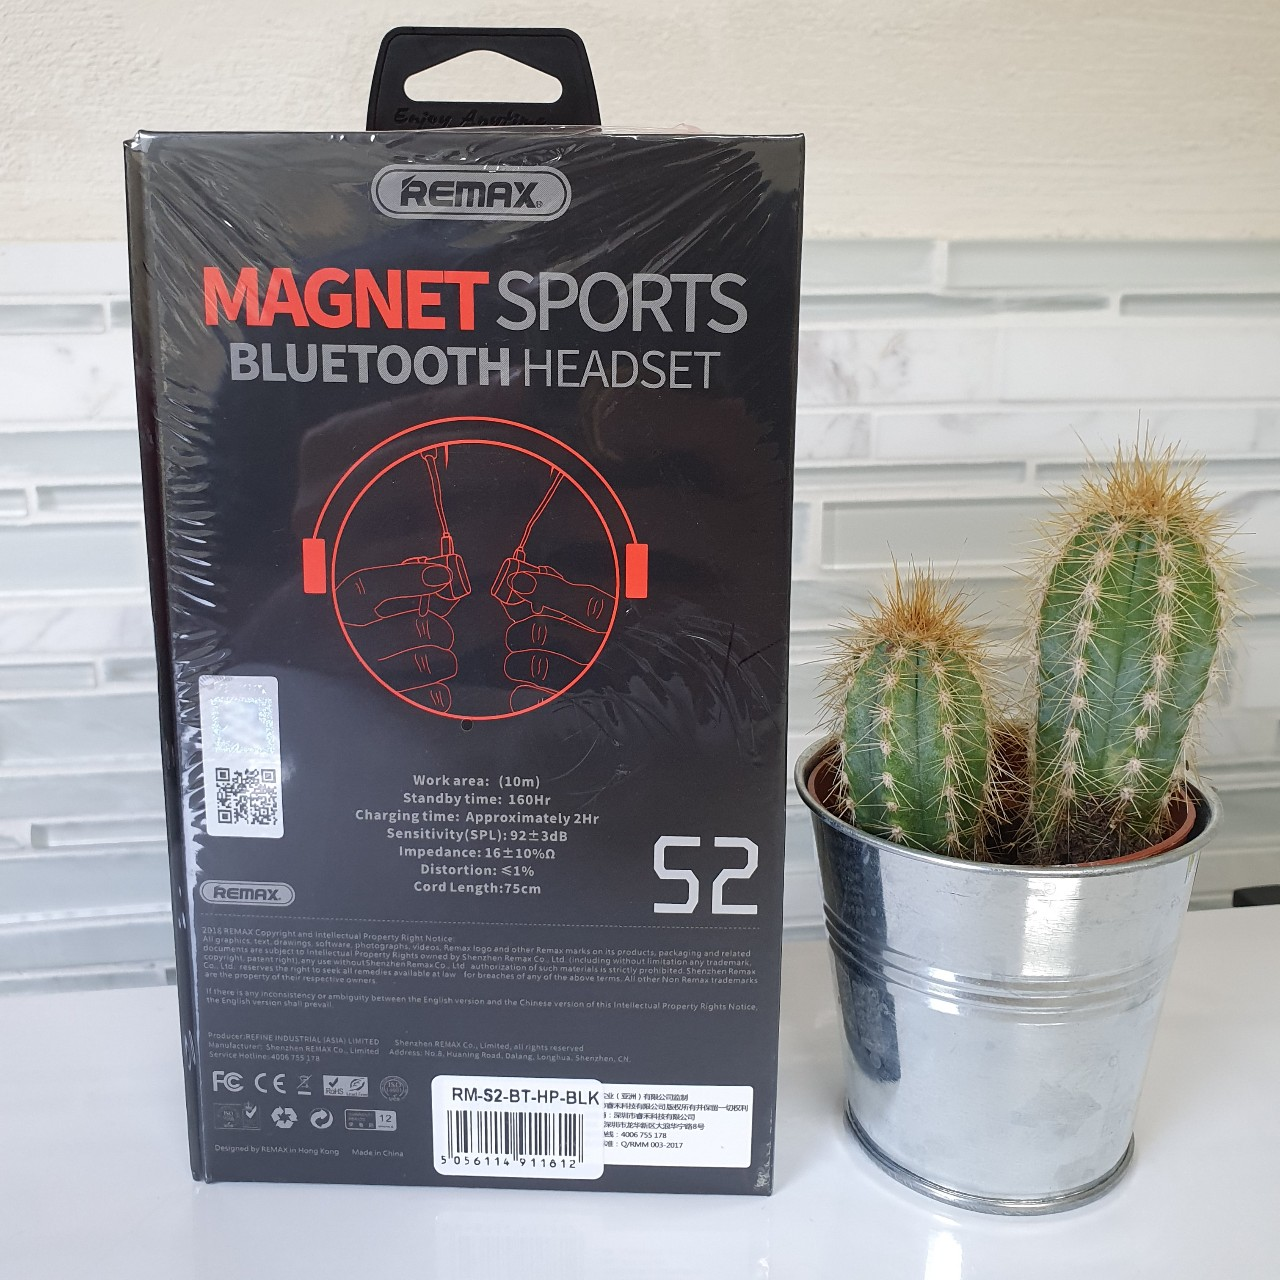 Remax S2 Magnet Sports Headset Quick Charge Often Depop